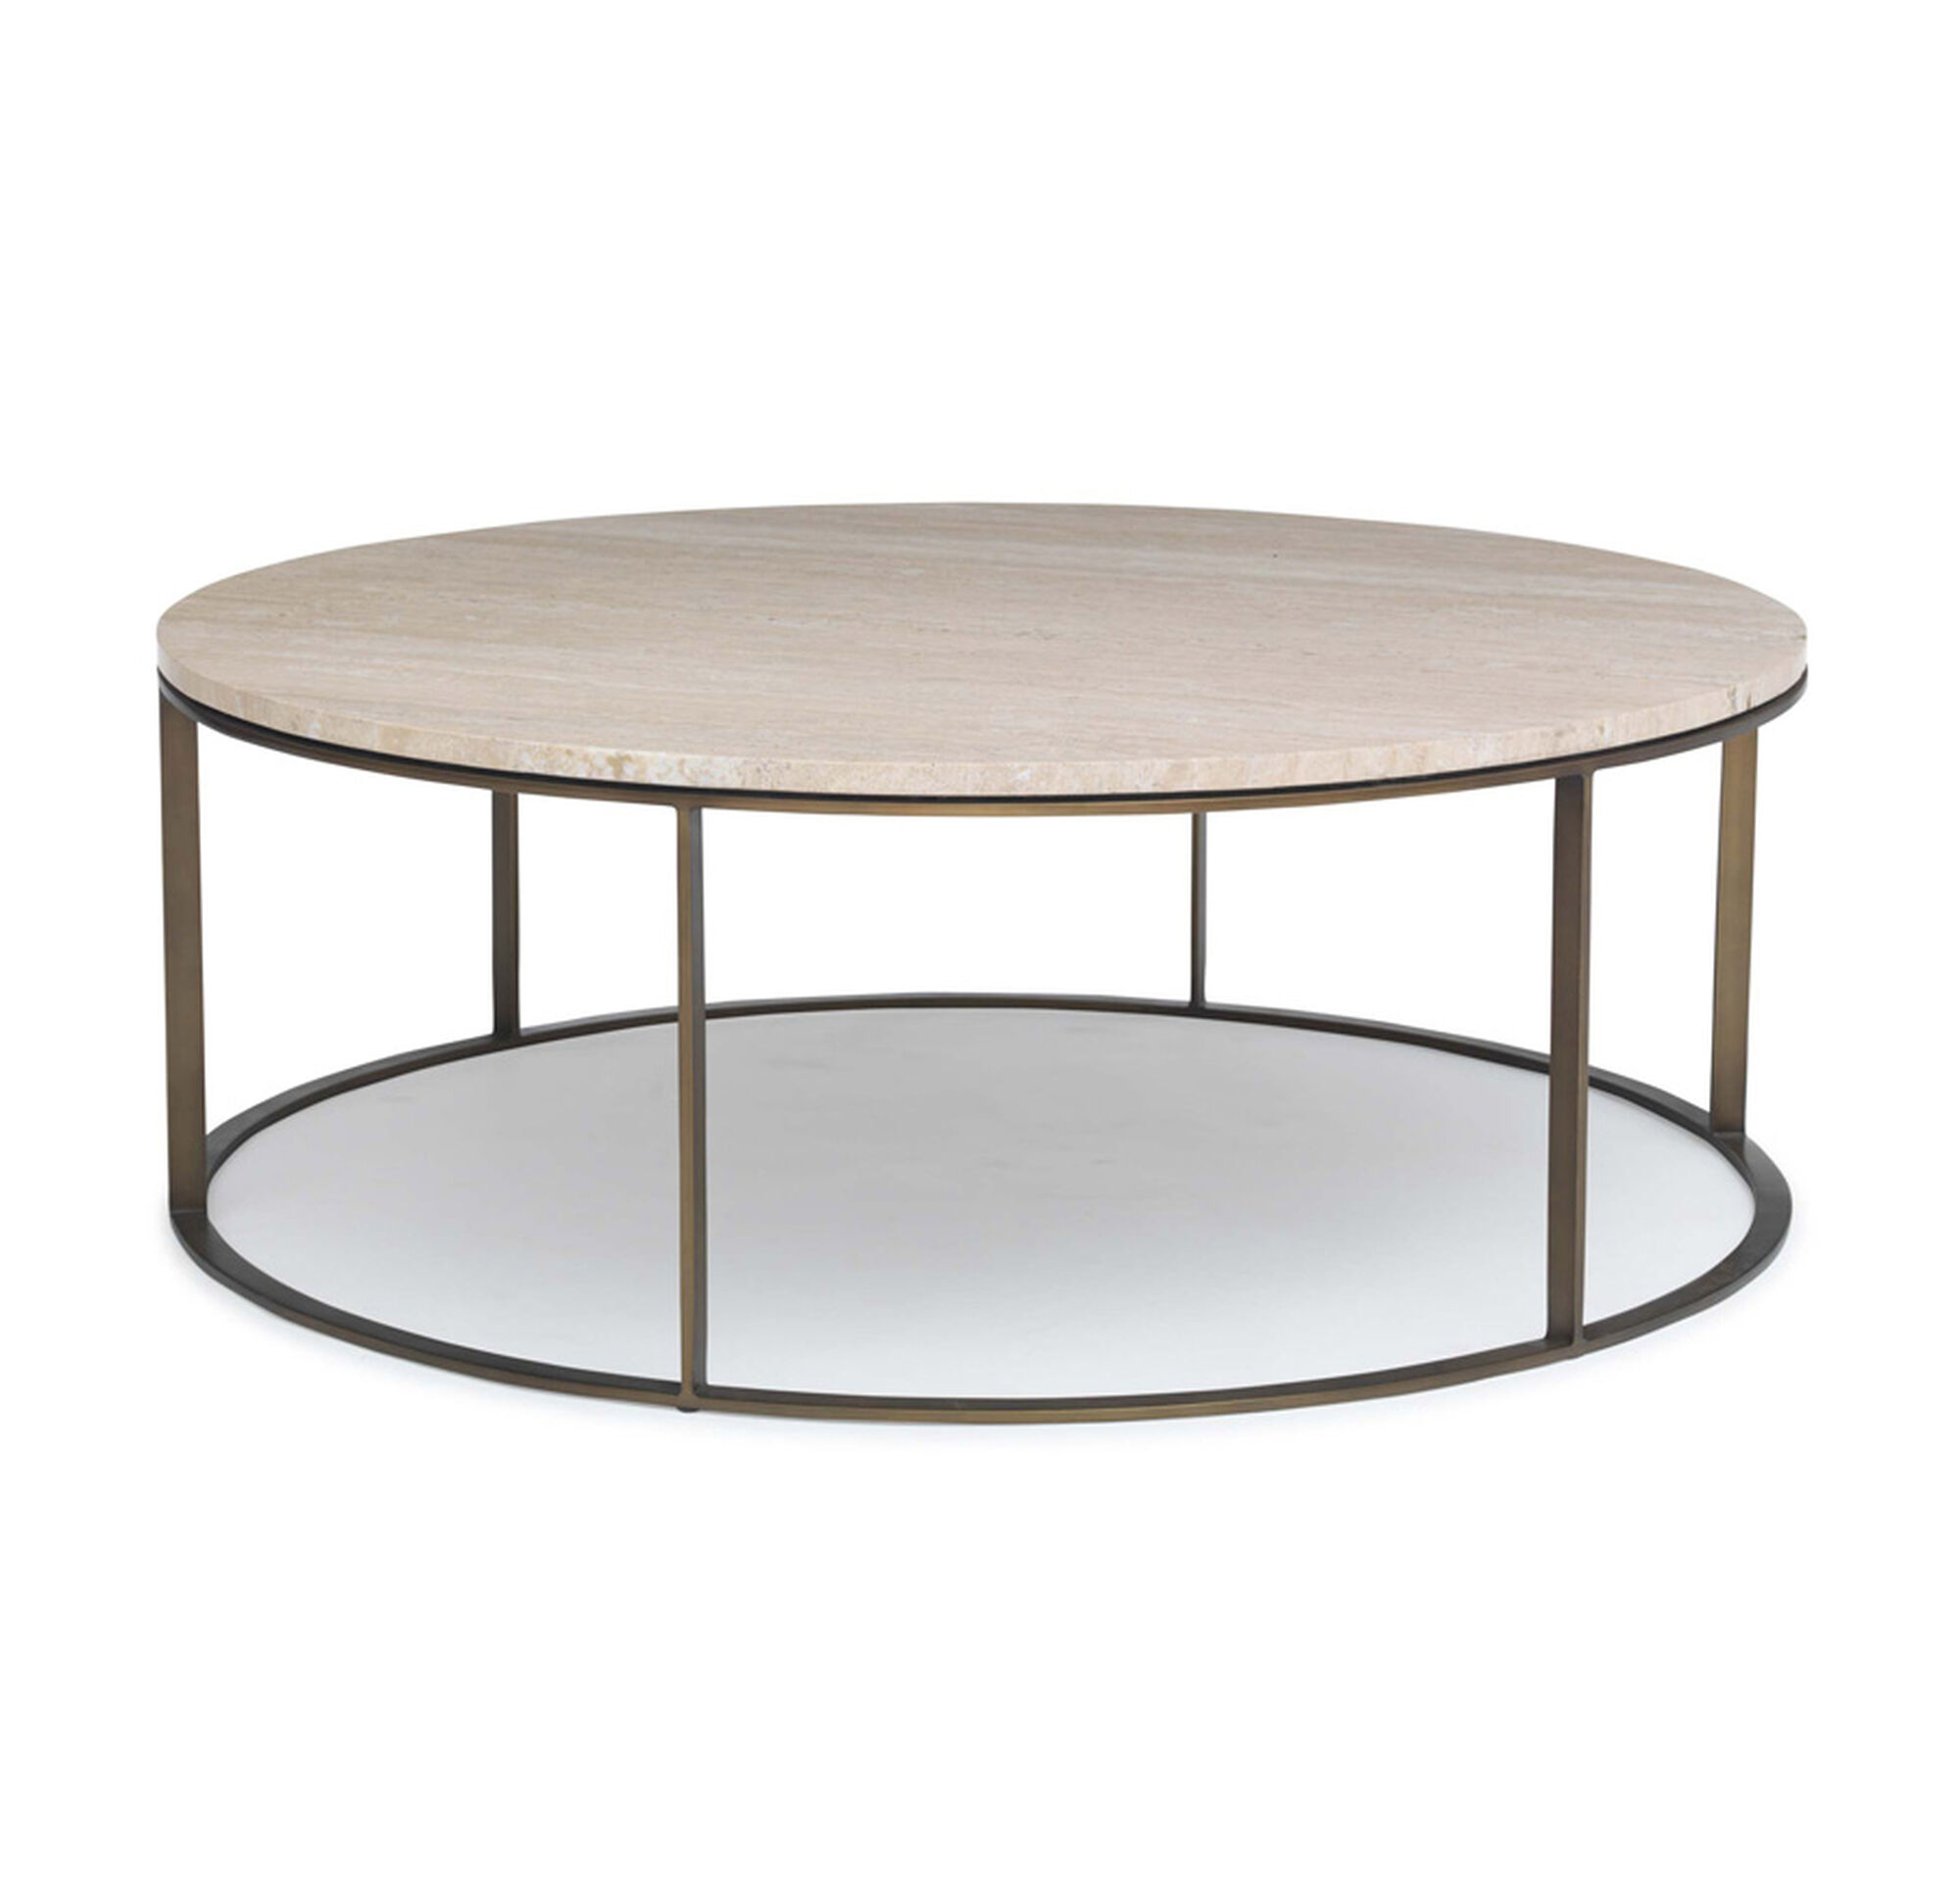 Allure round cocktail table What to put on a round coffee table